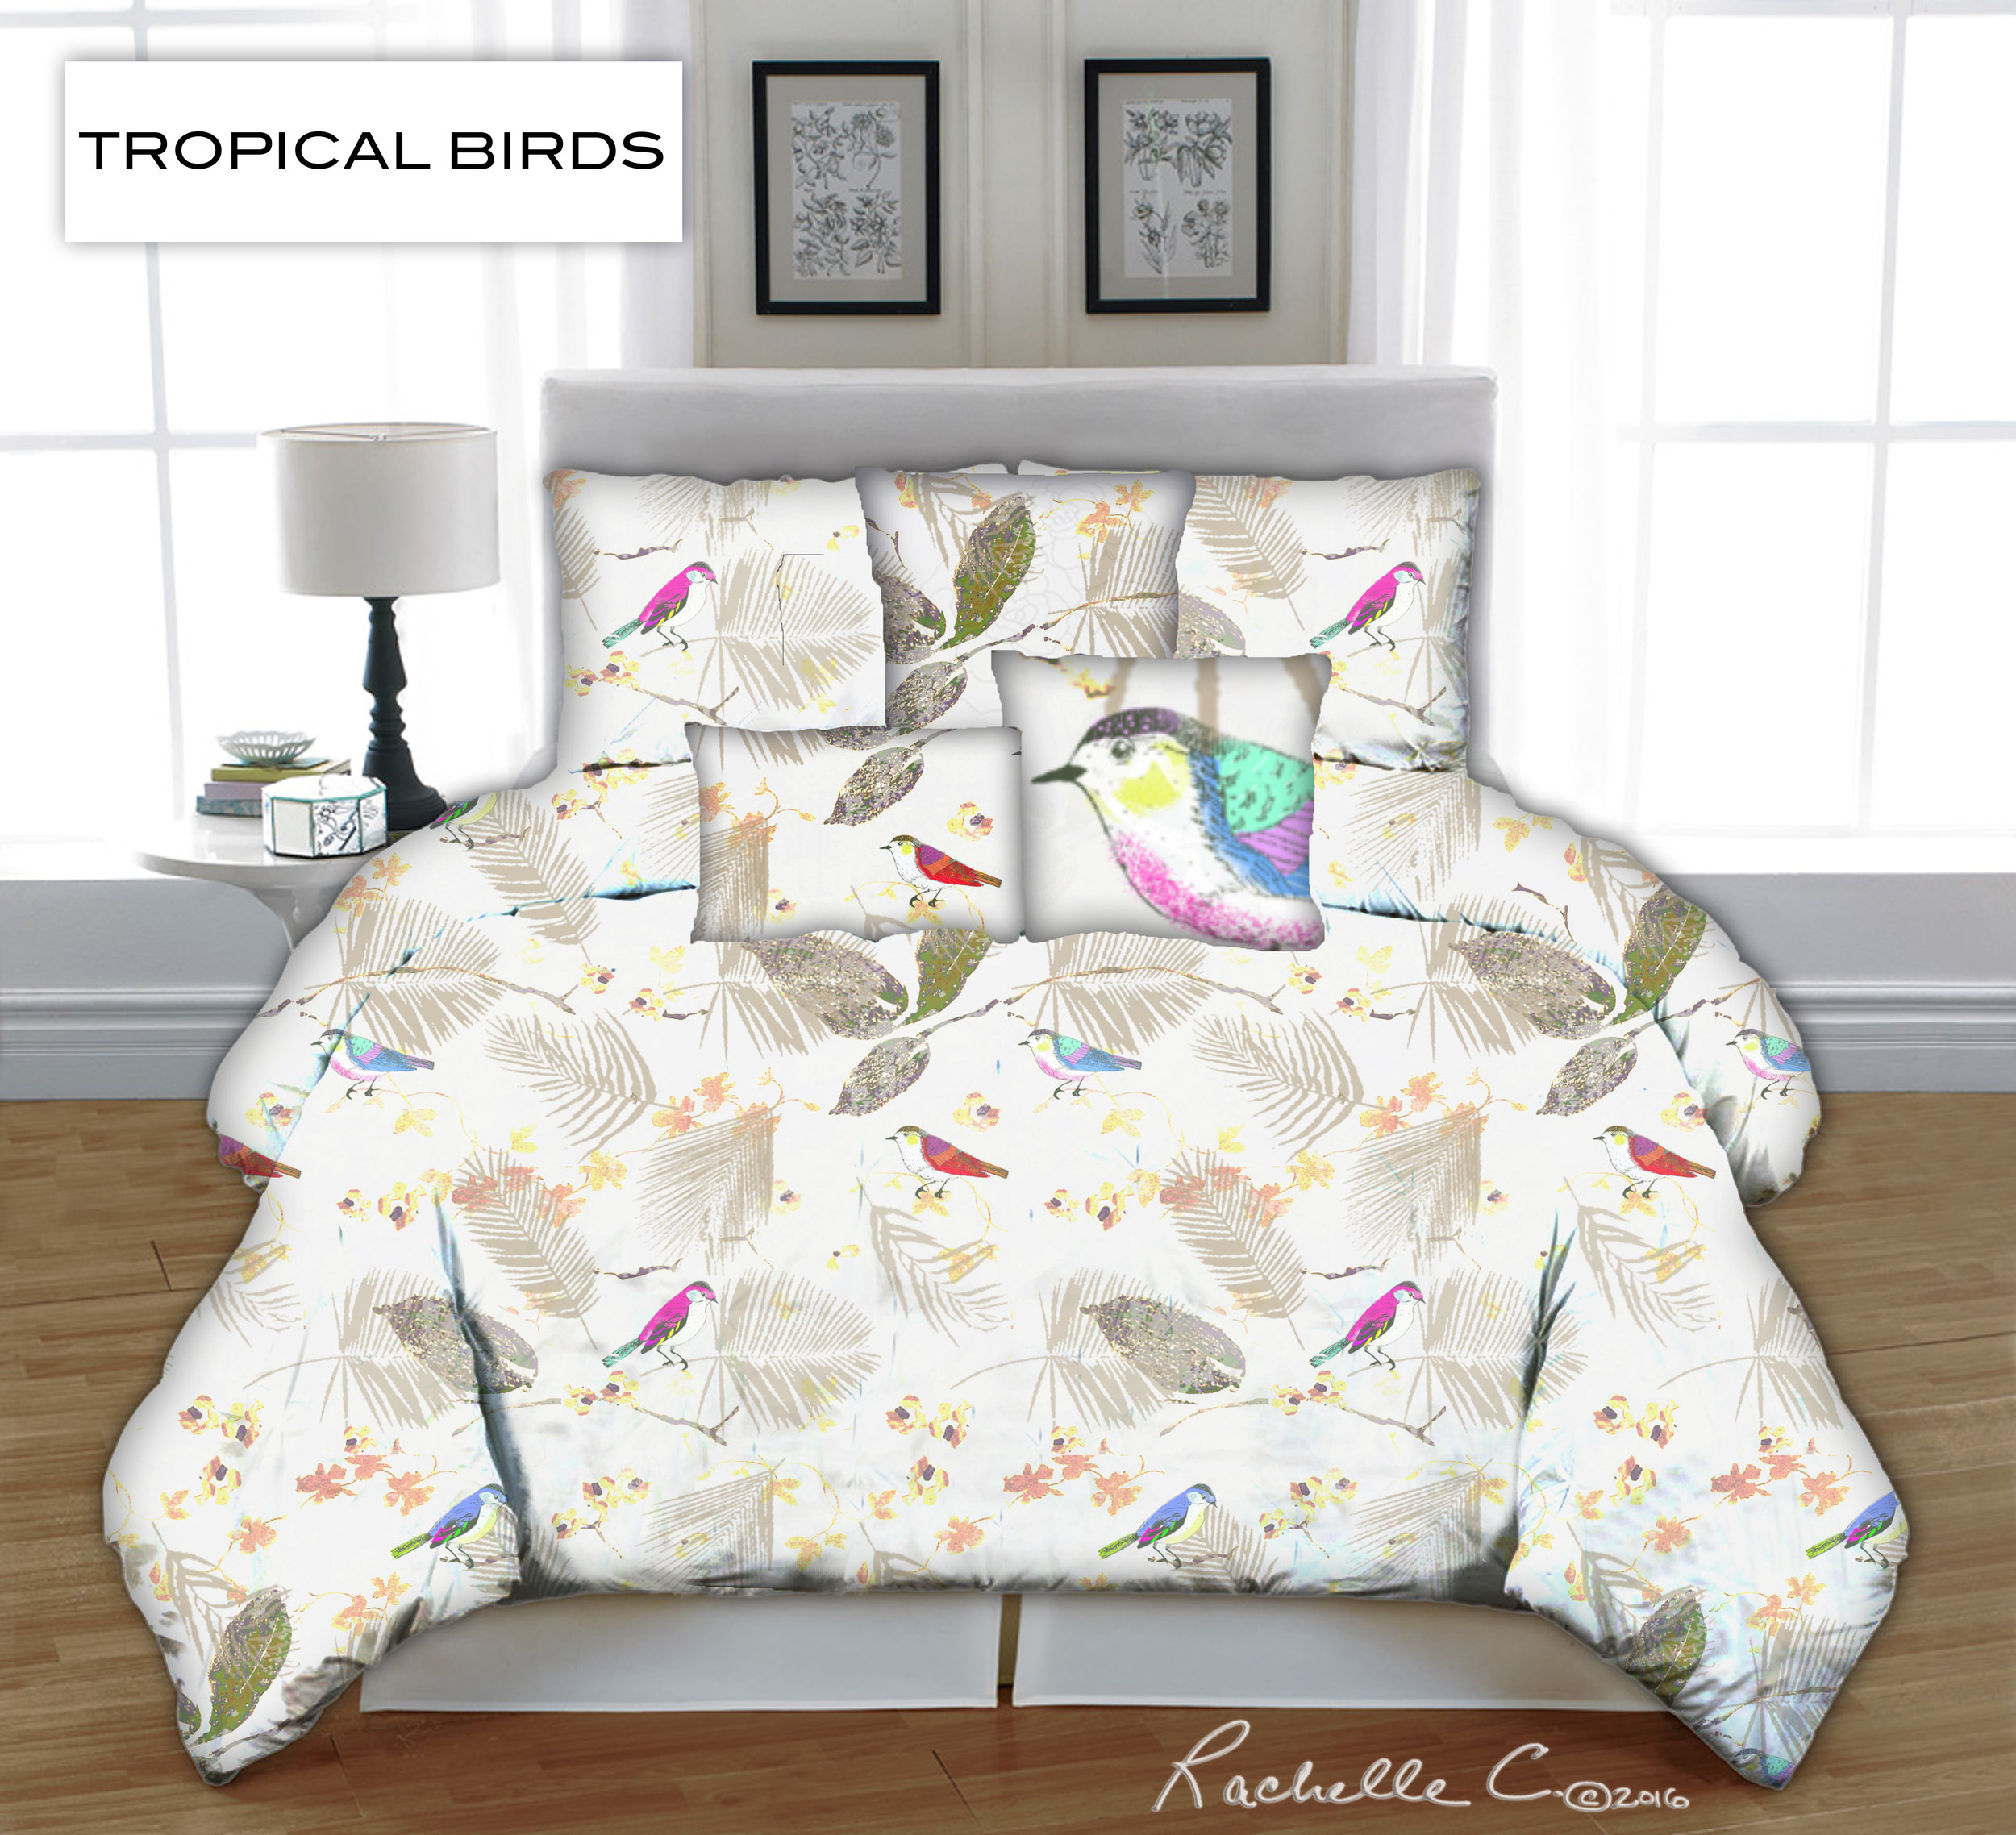 TROPICAL-BIRDS_bedding.jpg